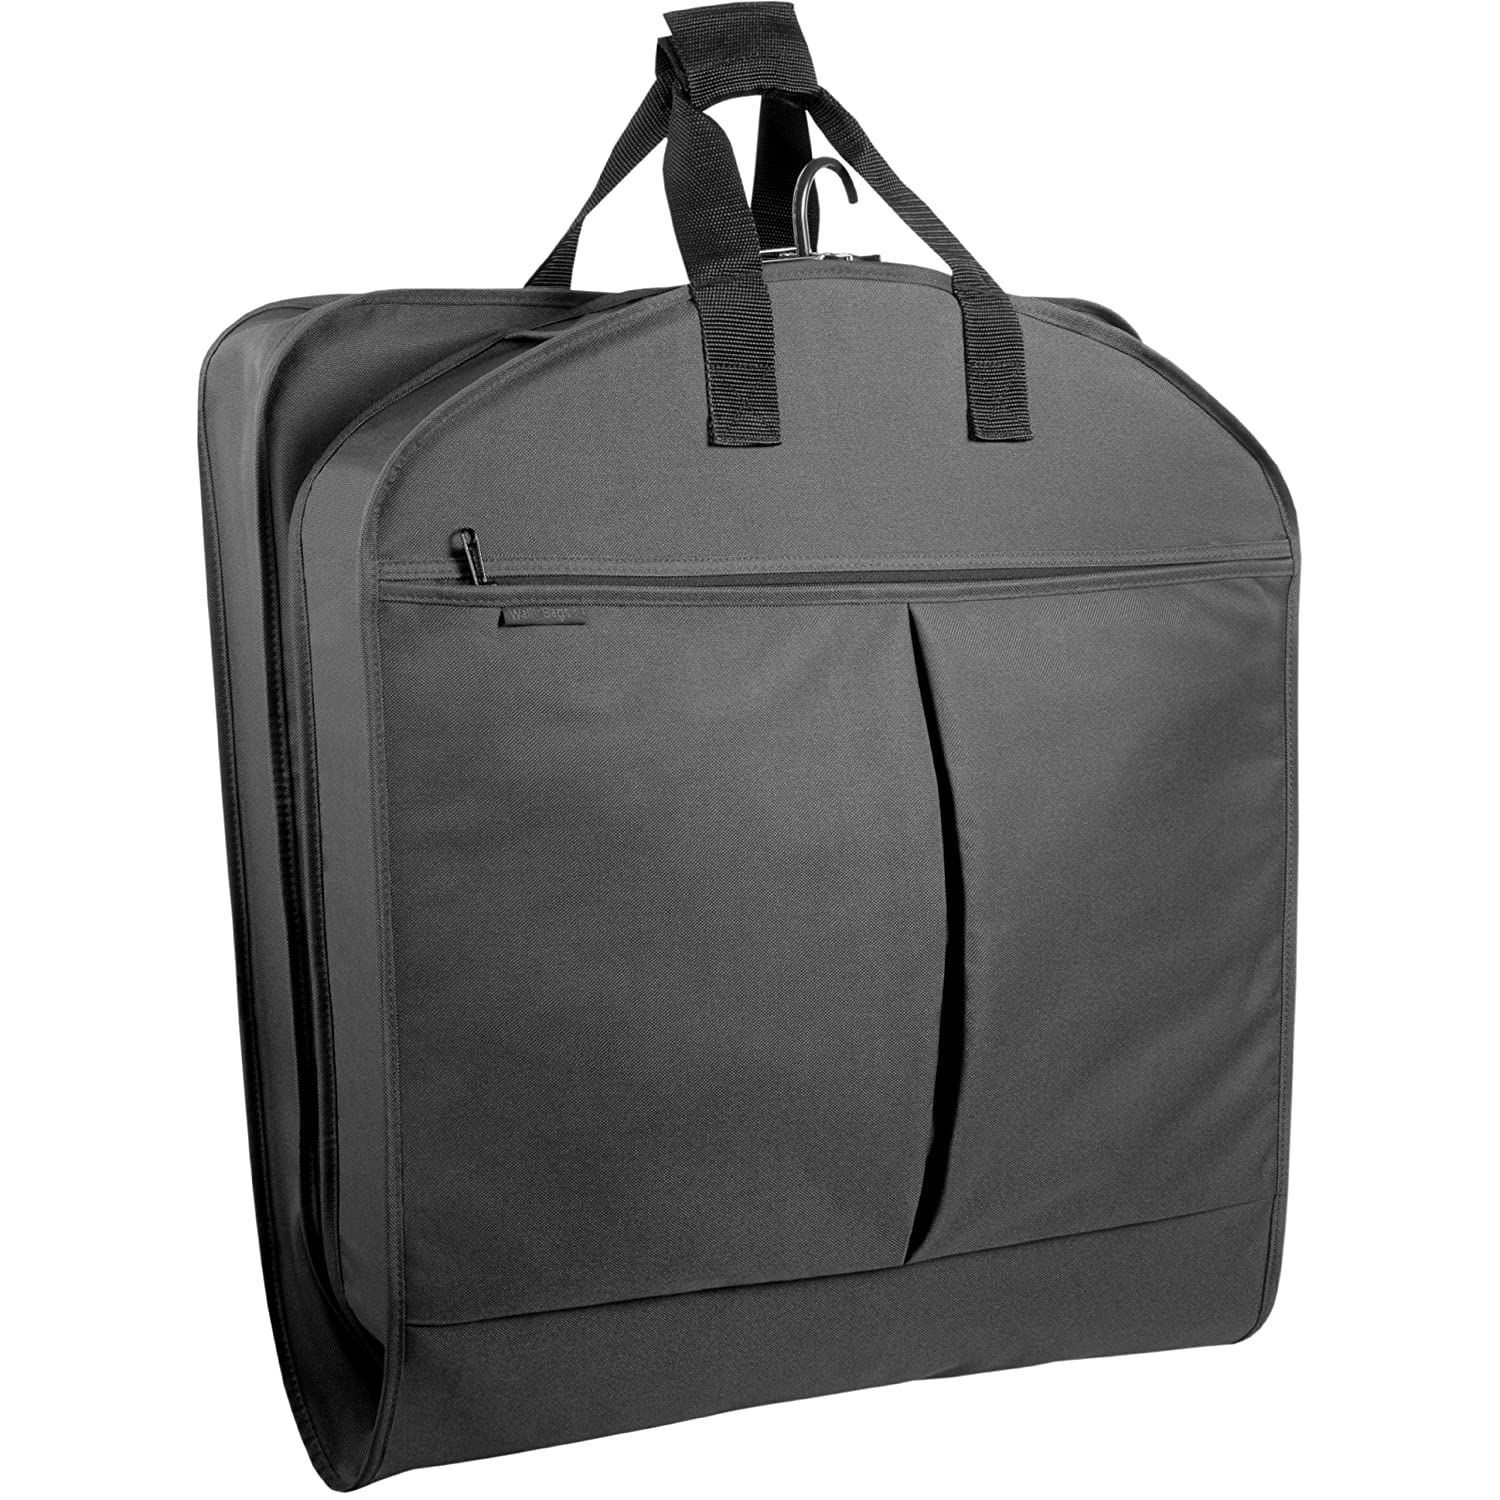 WallyBags Luggage 45 Extra Capacity Garment Bag with Pockets, Black